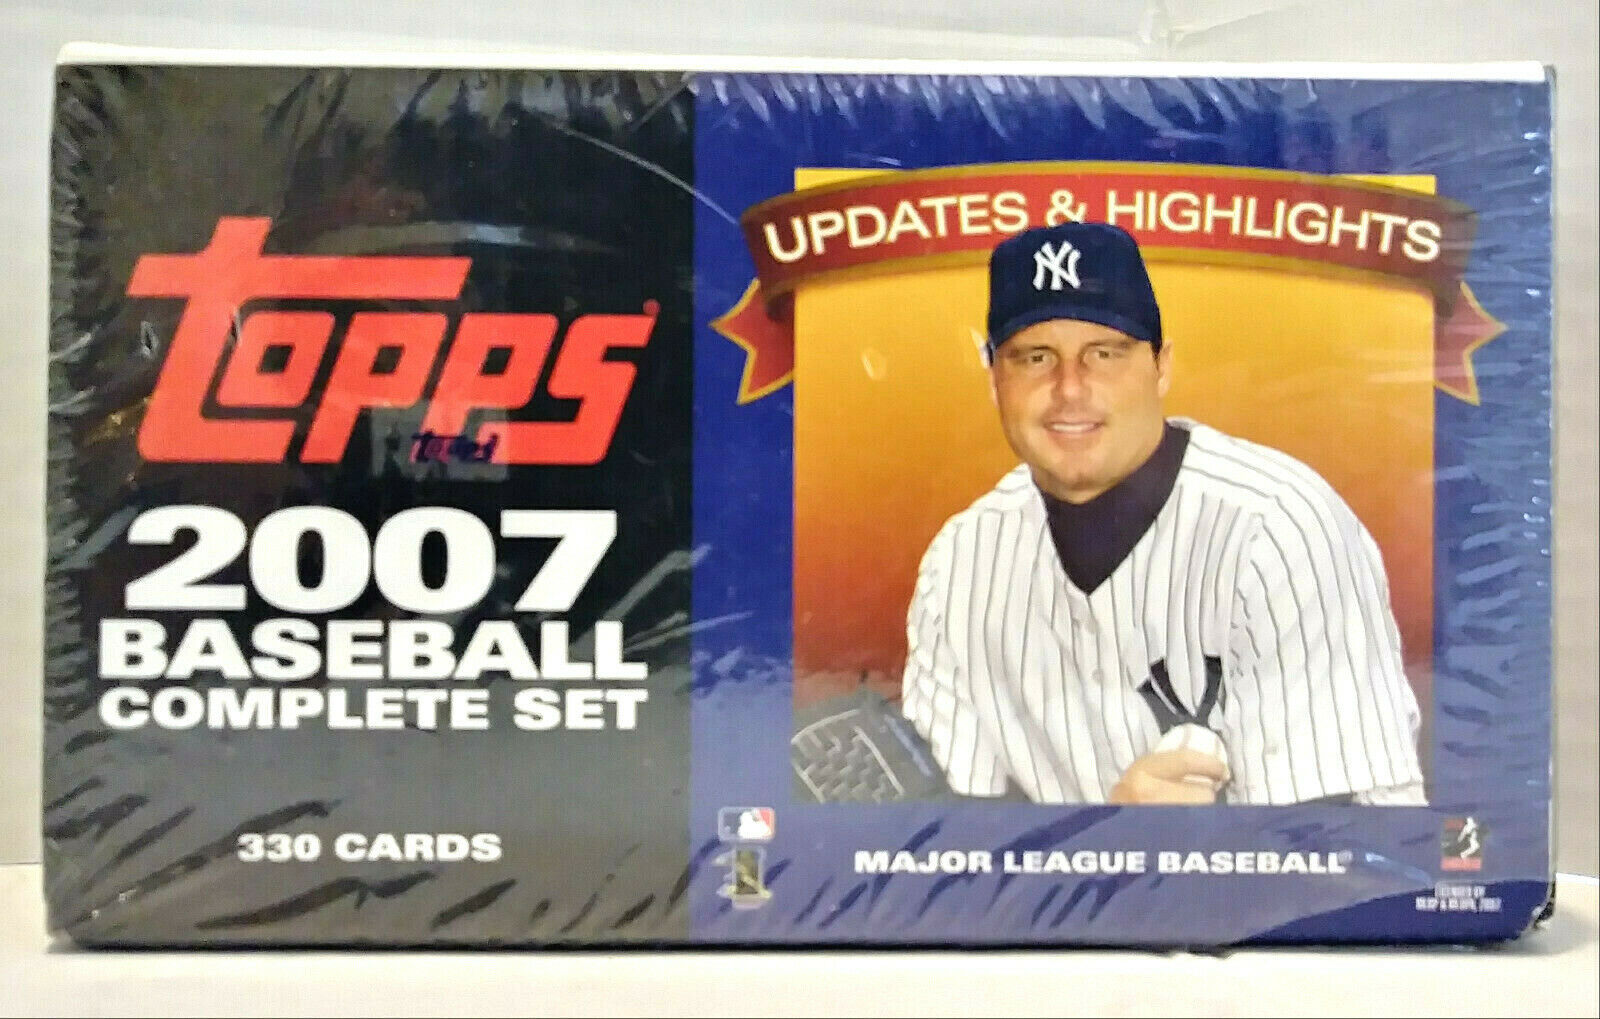 Primary image for 2007 Topps Baseball Hobby Box Updates & Highlights Complete Set 330 New